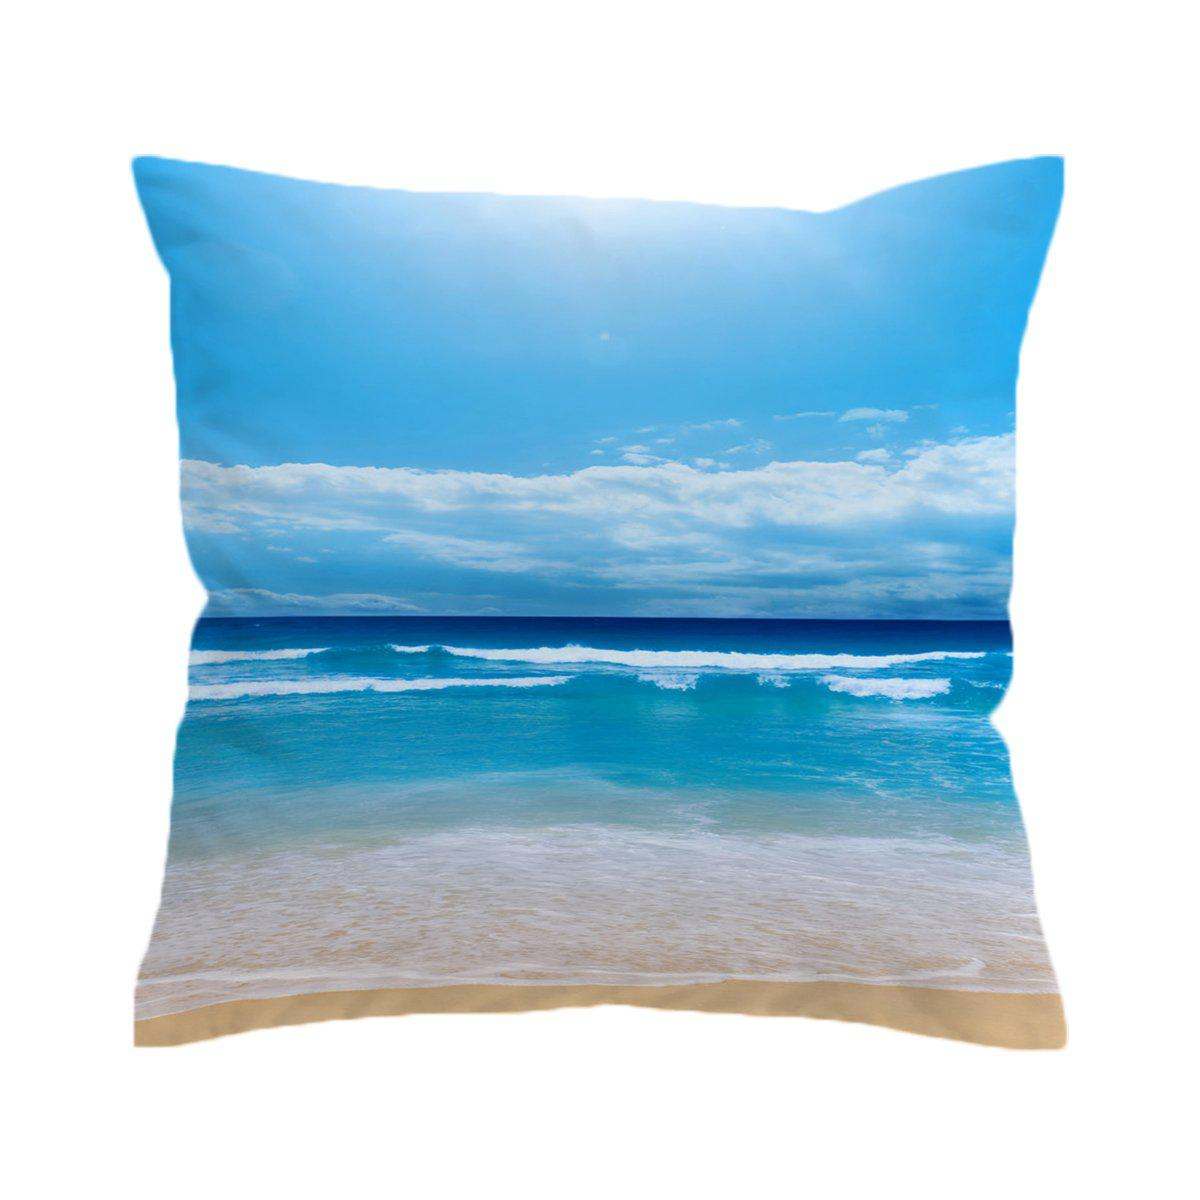 Peace of the Beach Pillow Cover-Coastal Passion